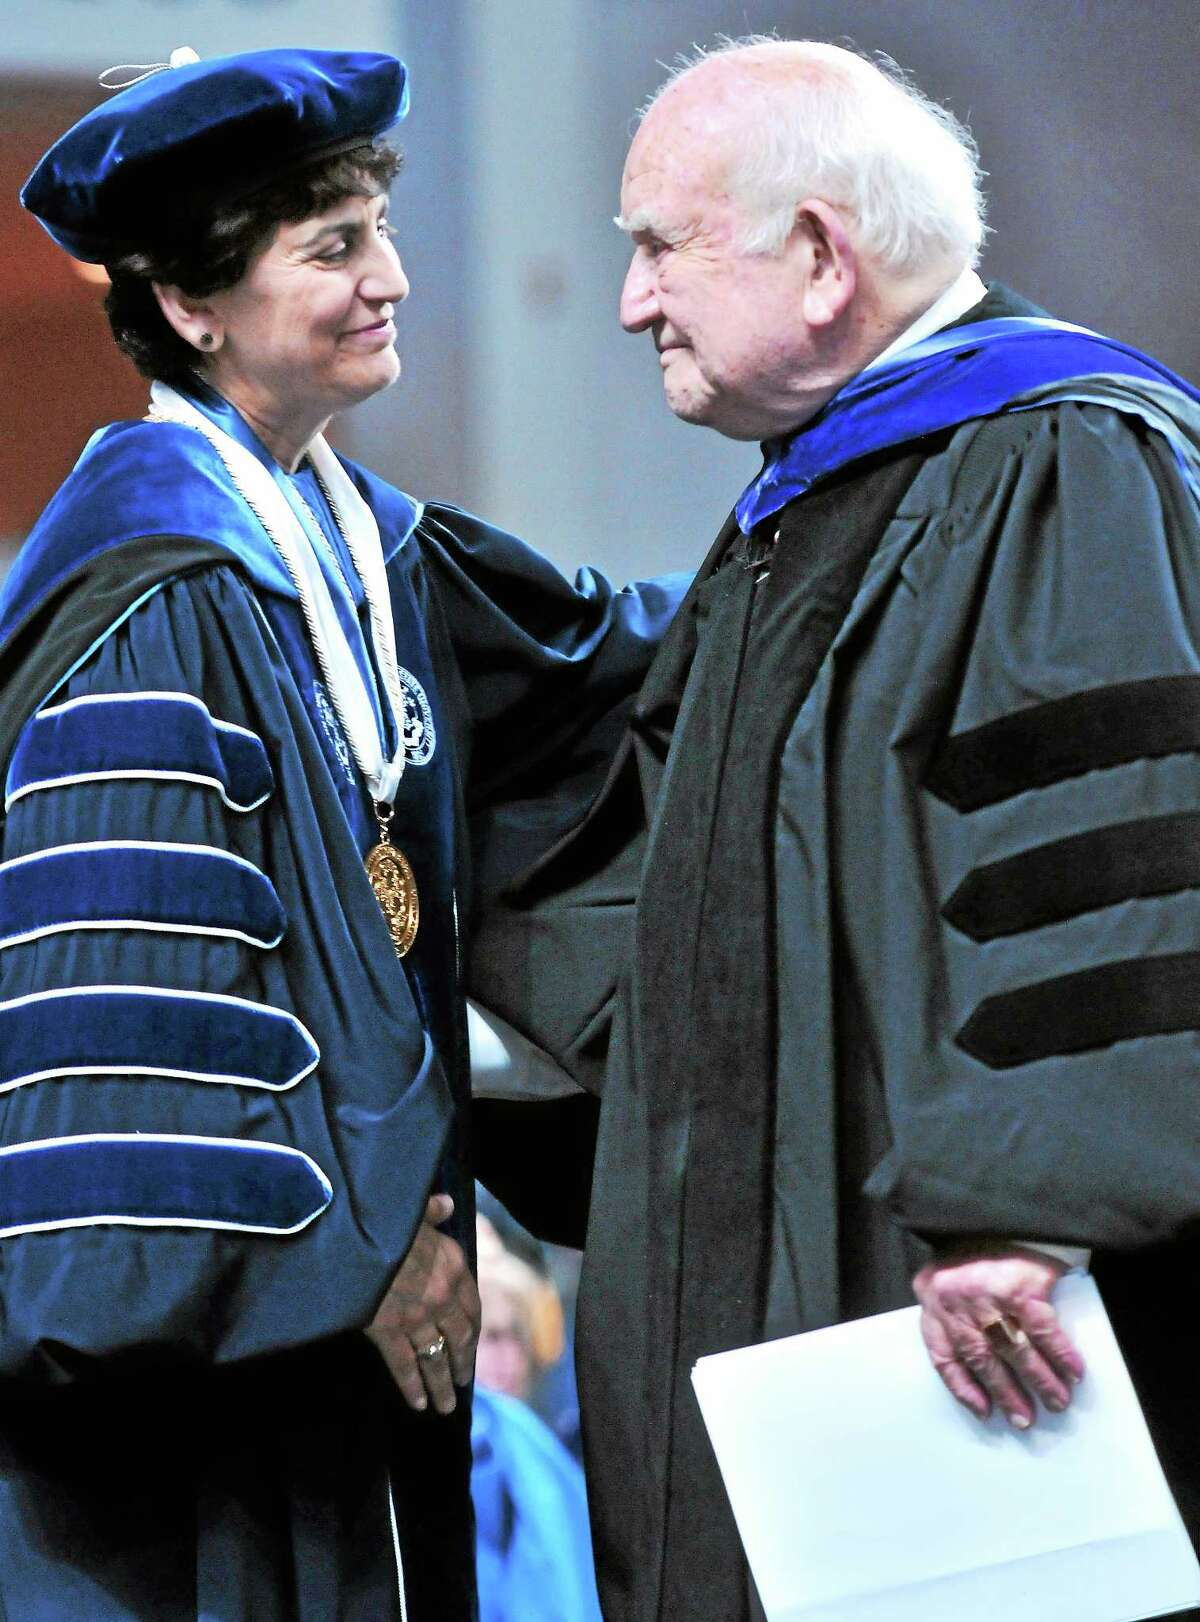 Southern Connecticut State University President Mary Papazian, left, and Edward Asner embrace after Asner gave the Undergraduate Commencement address for Southern at Webster Bank Arena in Bridgeport in May.